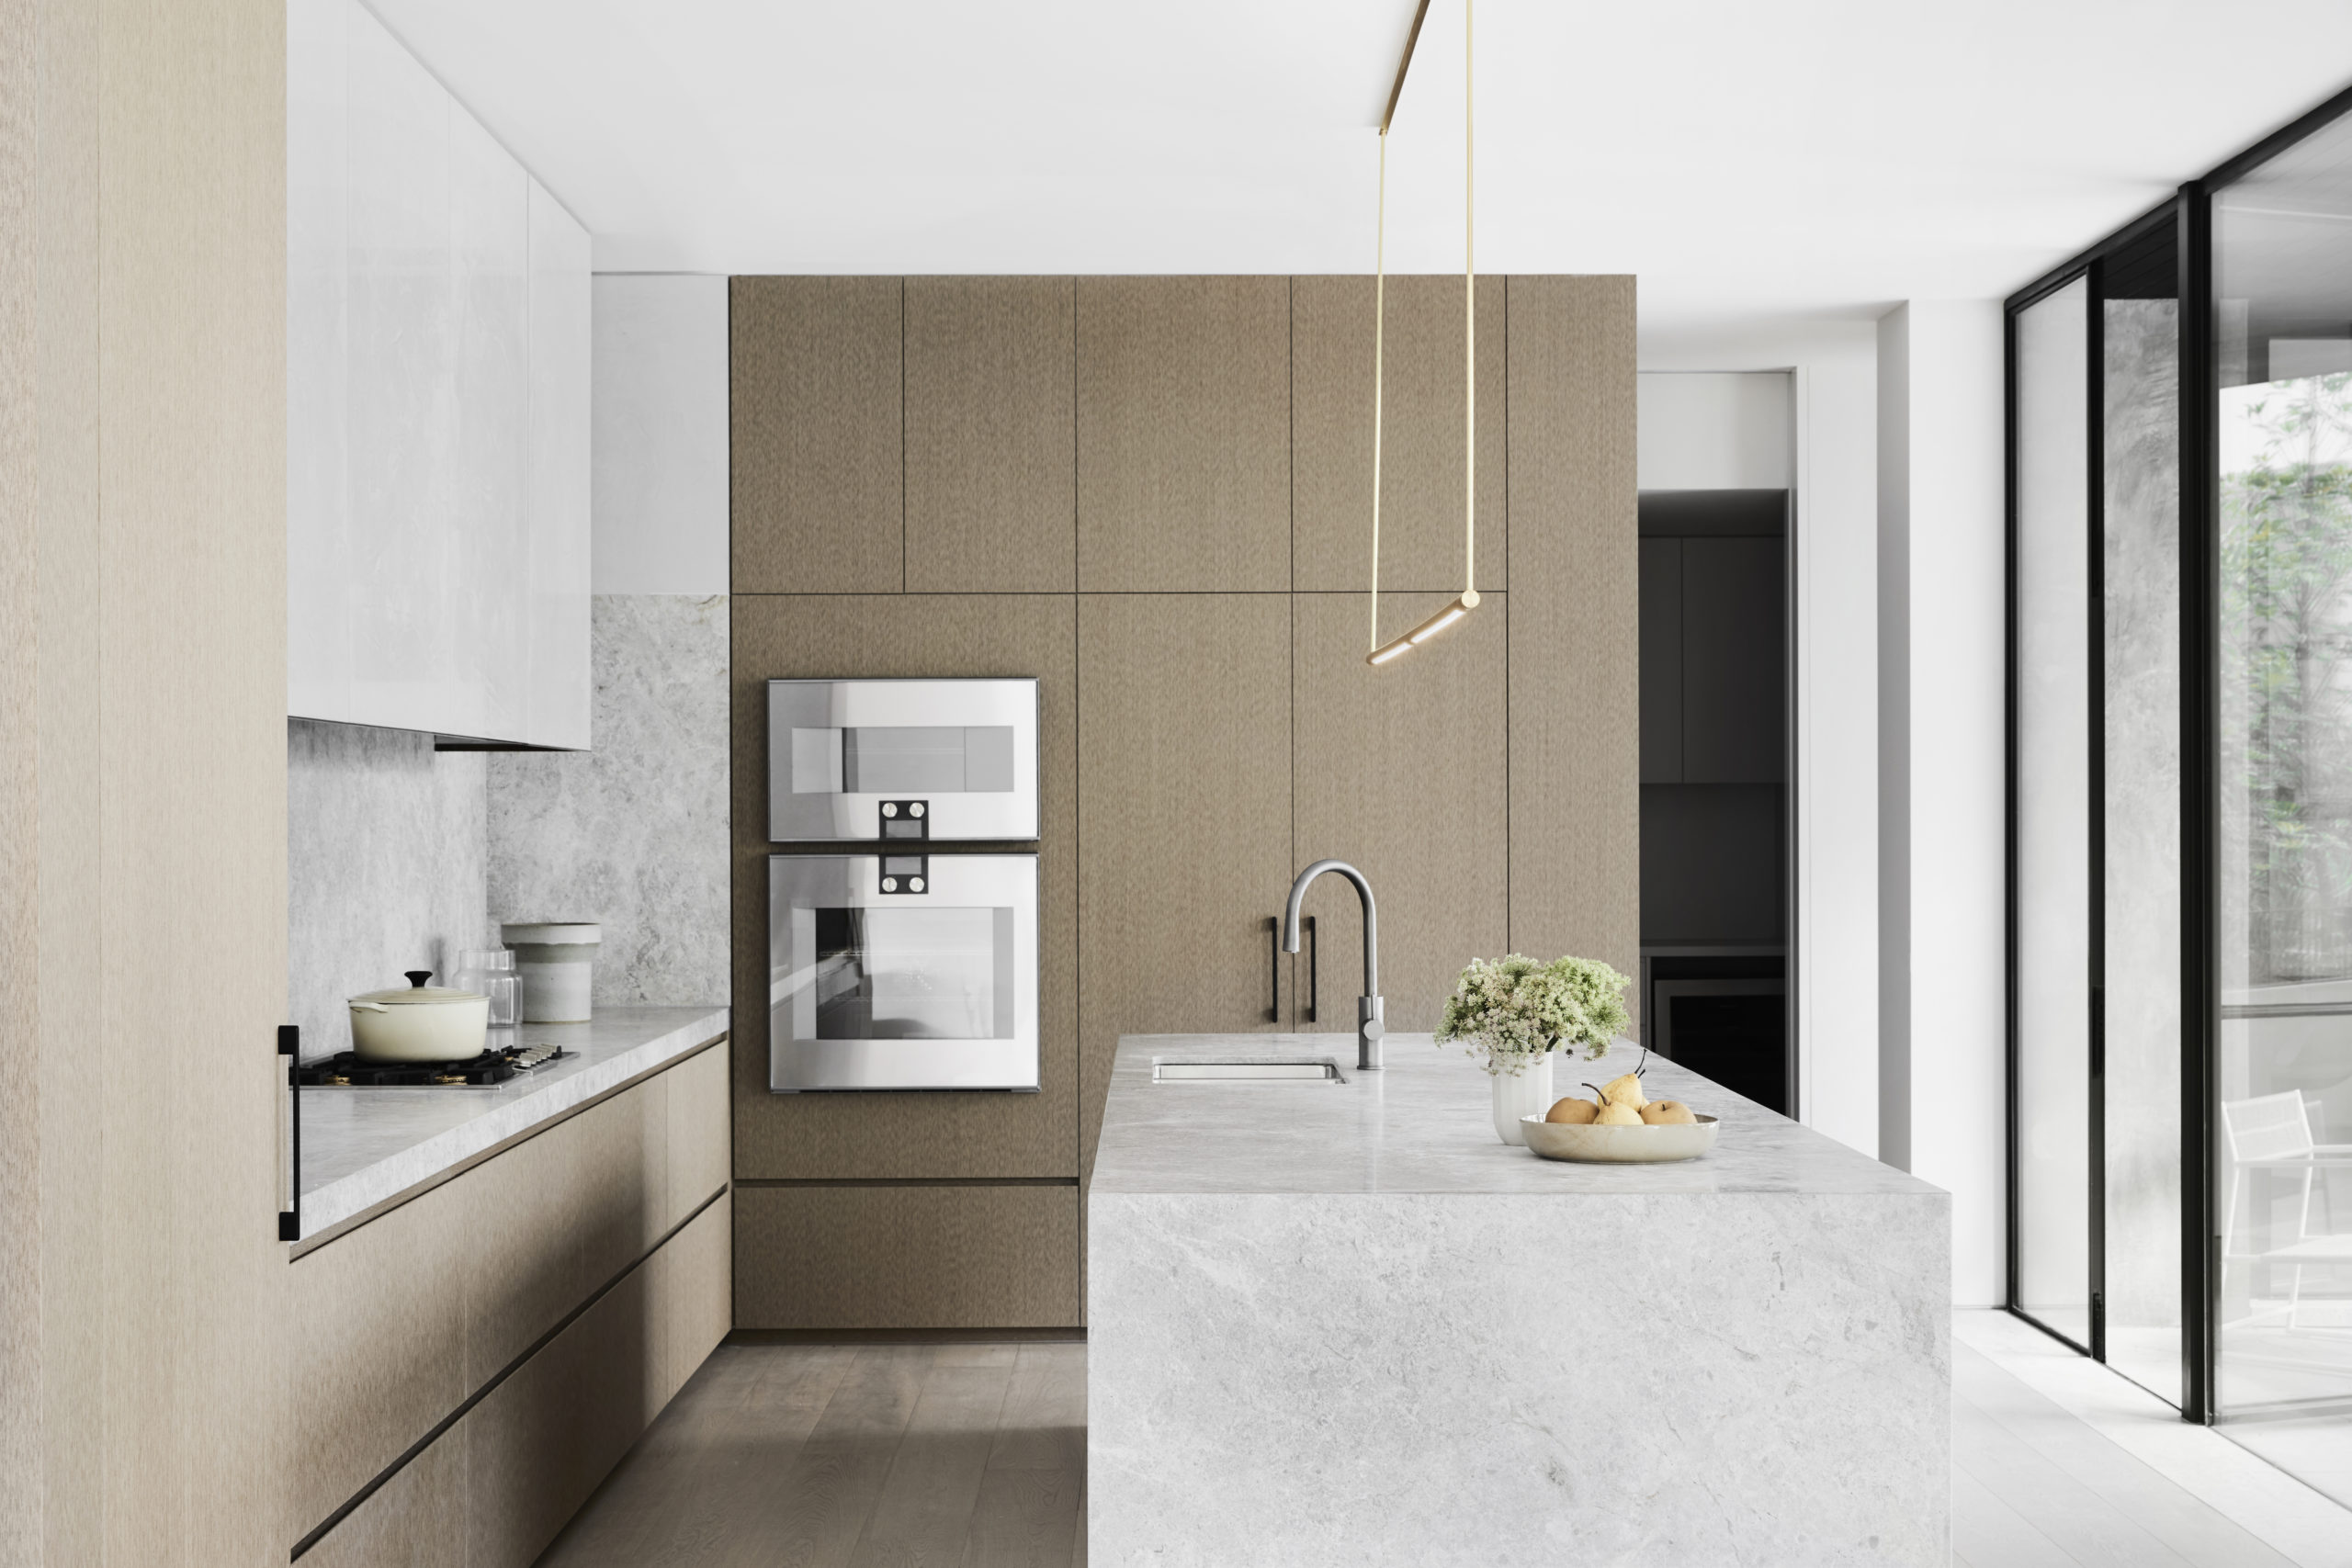 est living sussex street apartments mim design powell and glenn 10 scaled